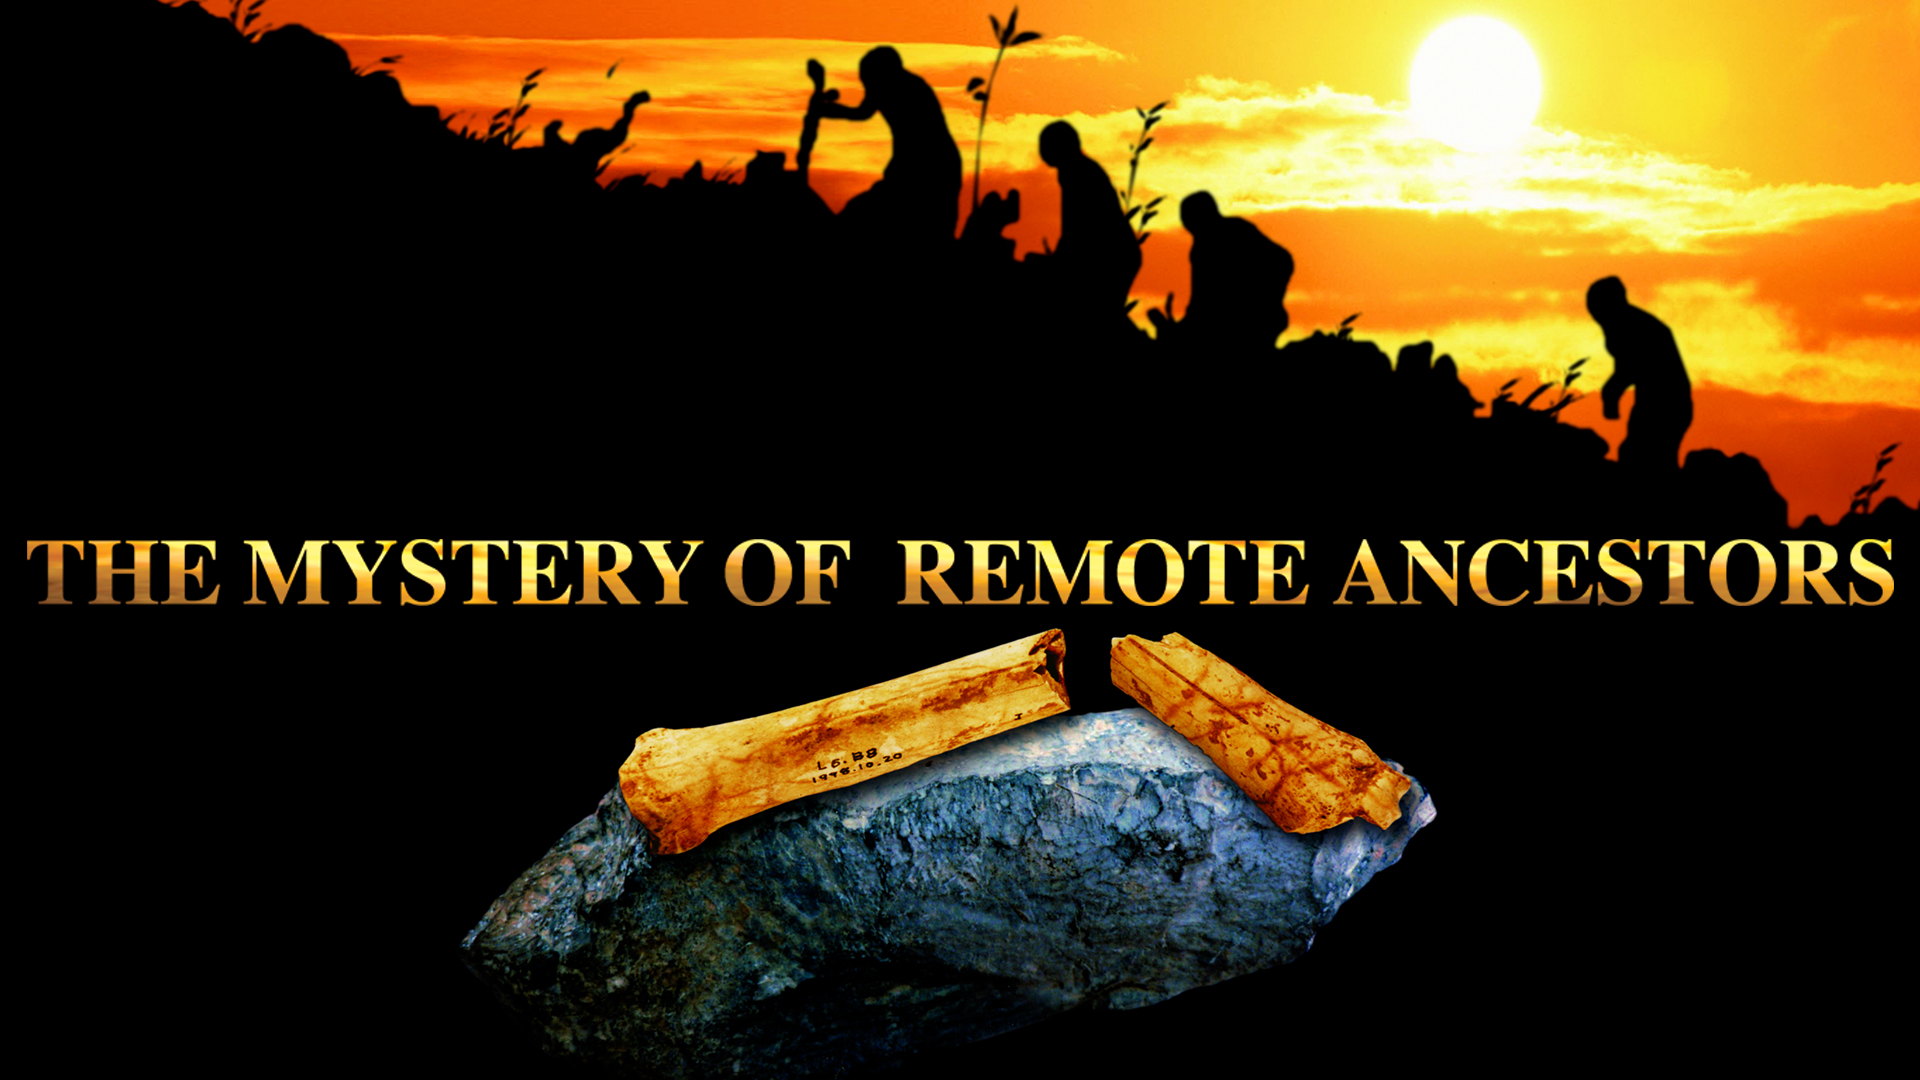 The Mystery of Remote Ancestors